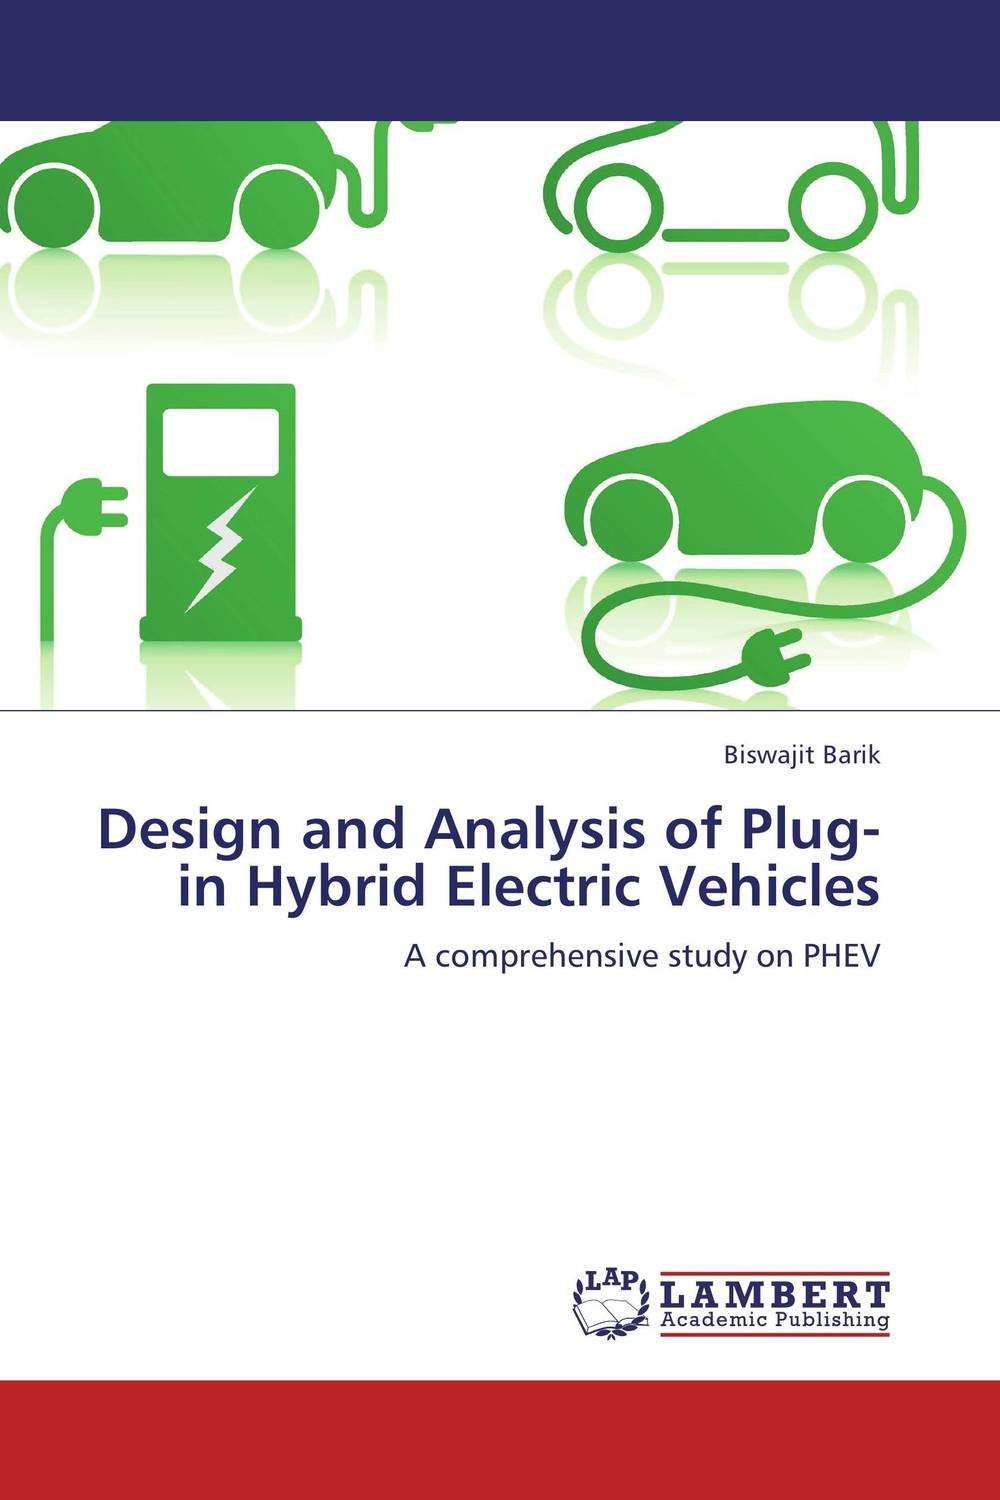 Design and Analysis of Plug-in Hybrid Electric Vehicles